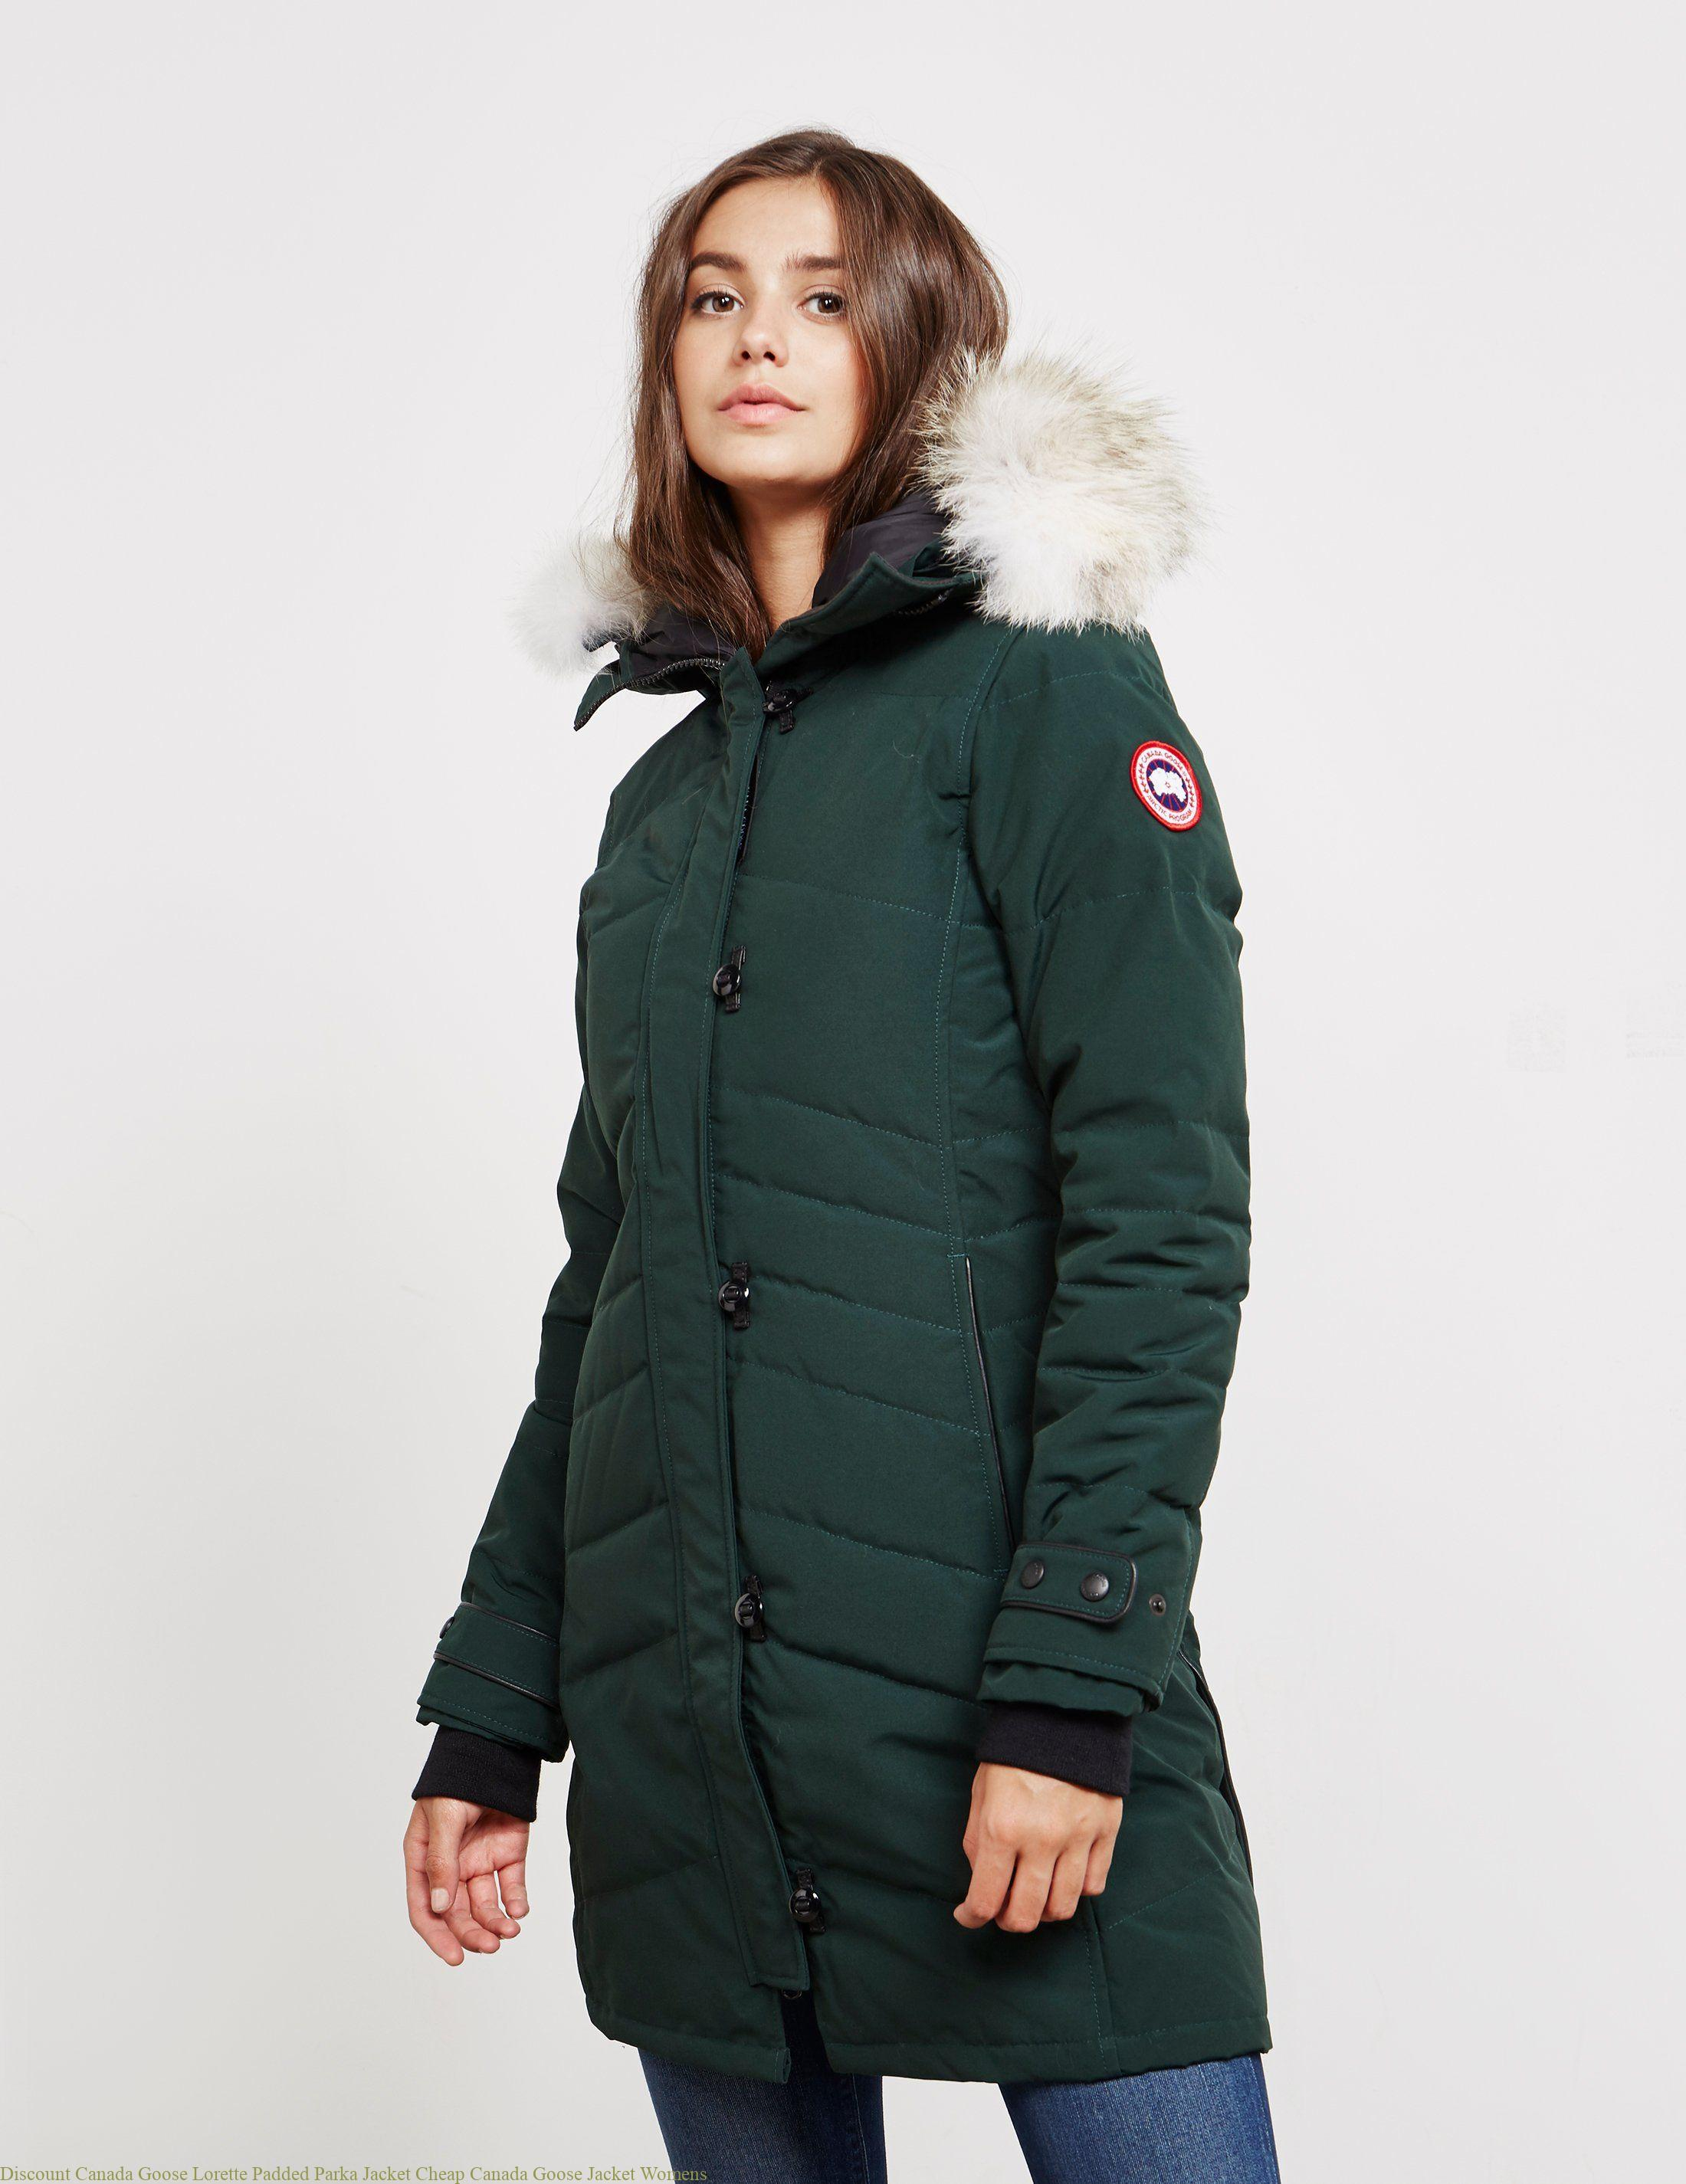 Discount Canada Goose Lorette Padded Parka Jacket Cheap Canada Goose Jacket Womens